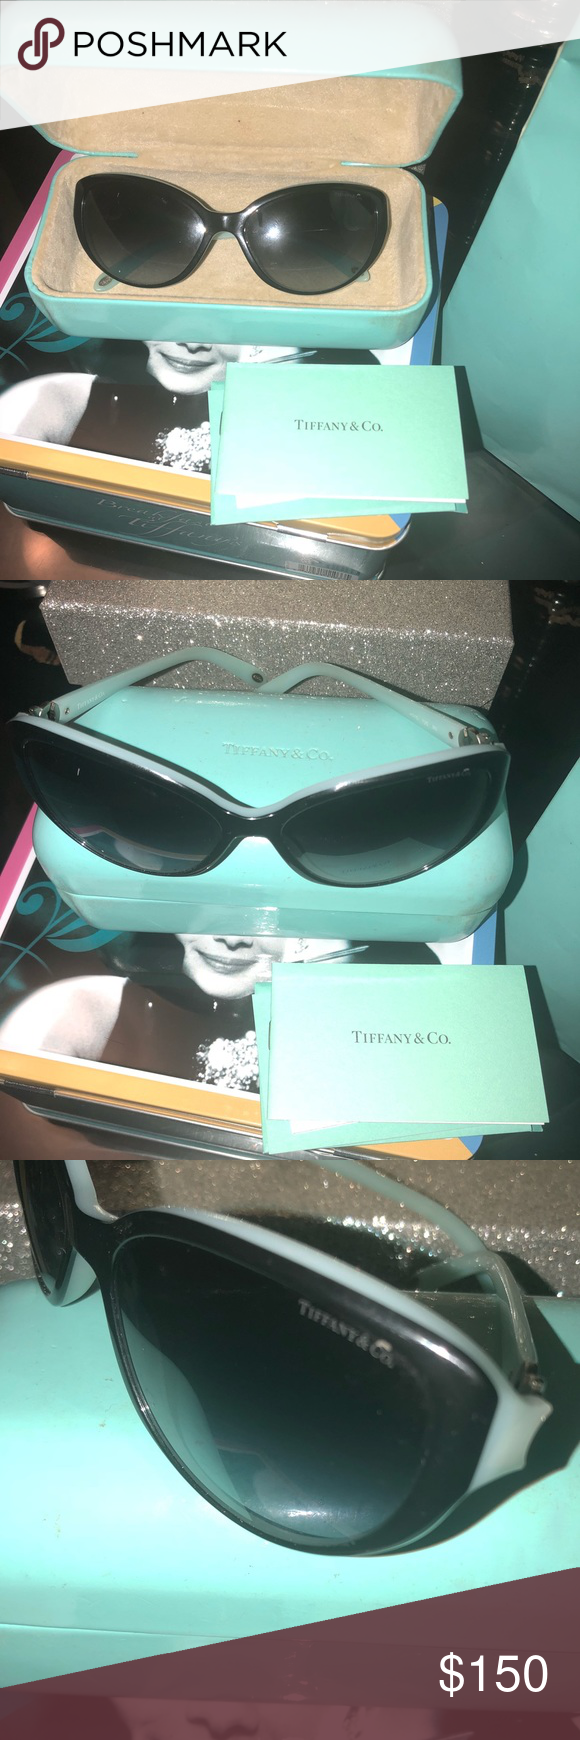 bbbc009a16e1 Tiffany   Co. Women s Polarized Cat Eye Sunglasses Tiffany   Co. Women s  Polarized TF 4088 8134 3b Cat Eye Blue Heart Sunglasses Used in Great  condition